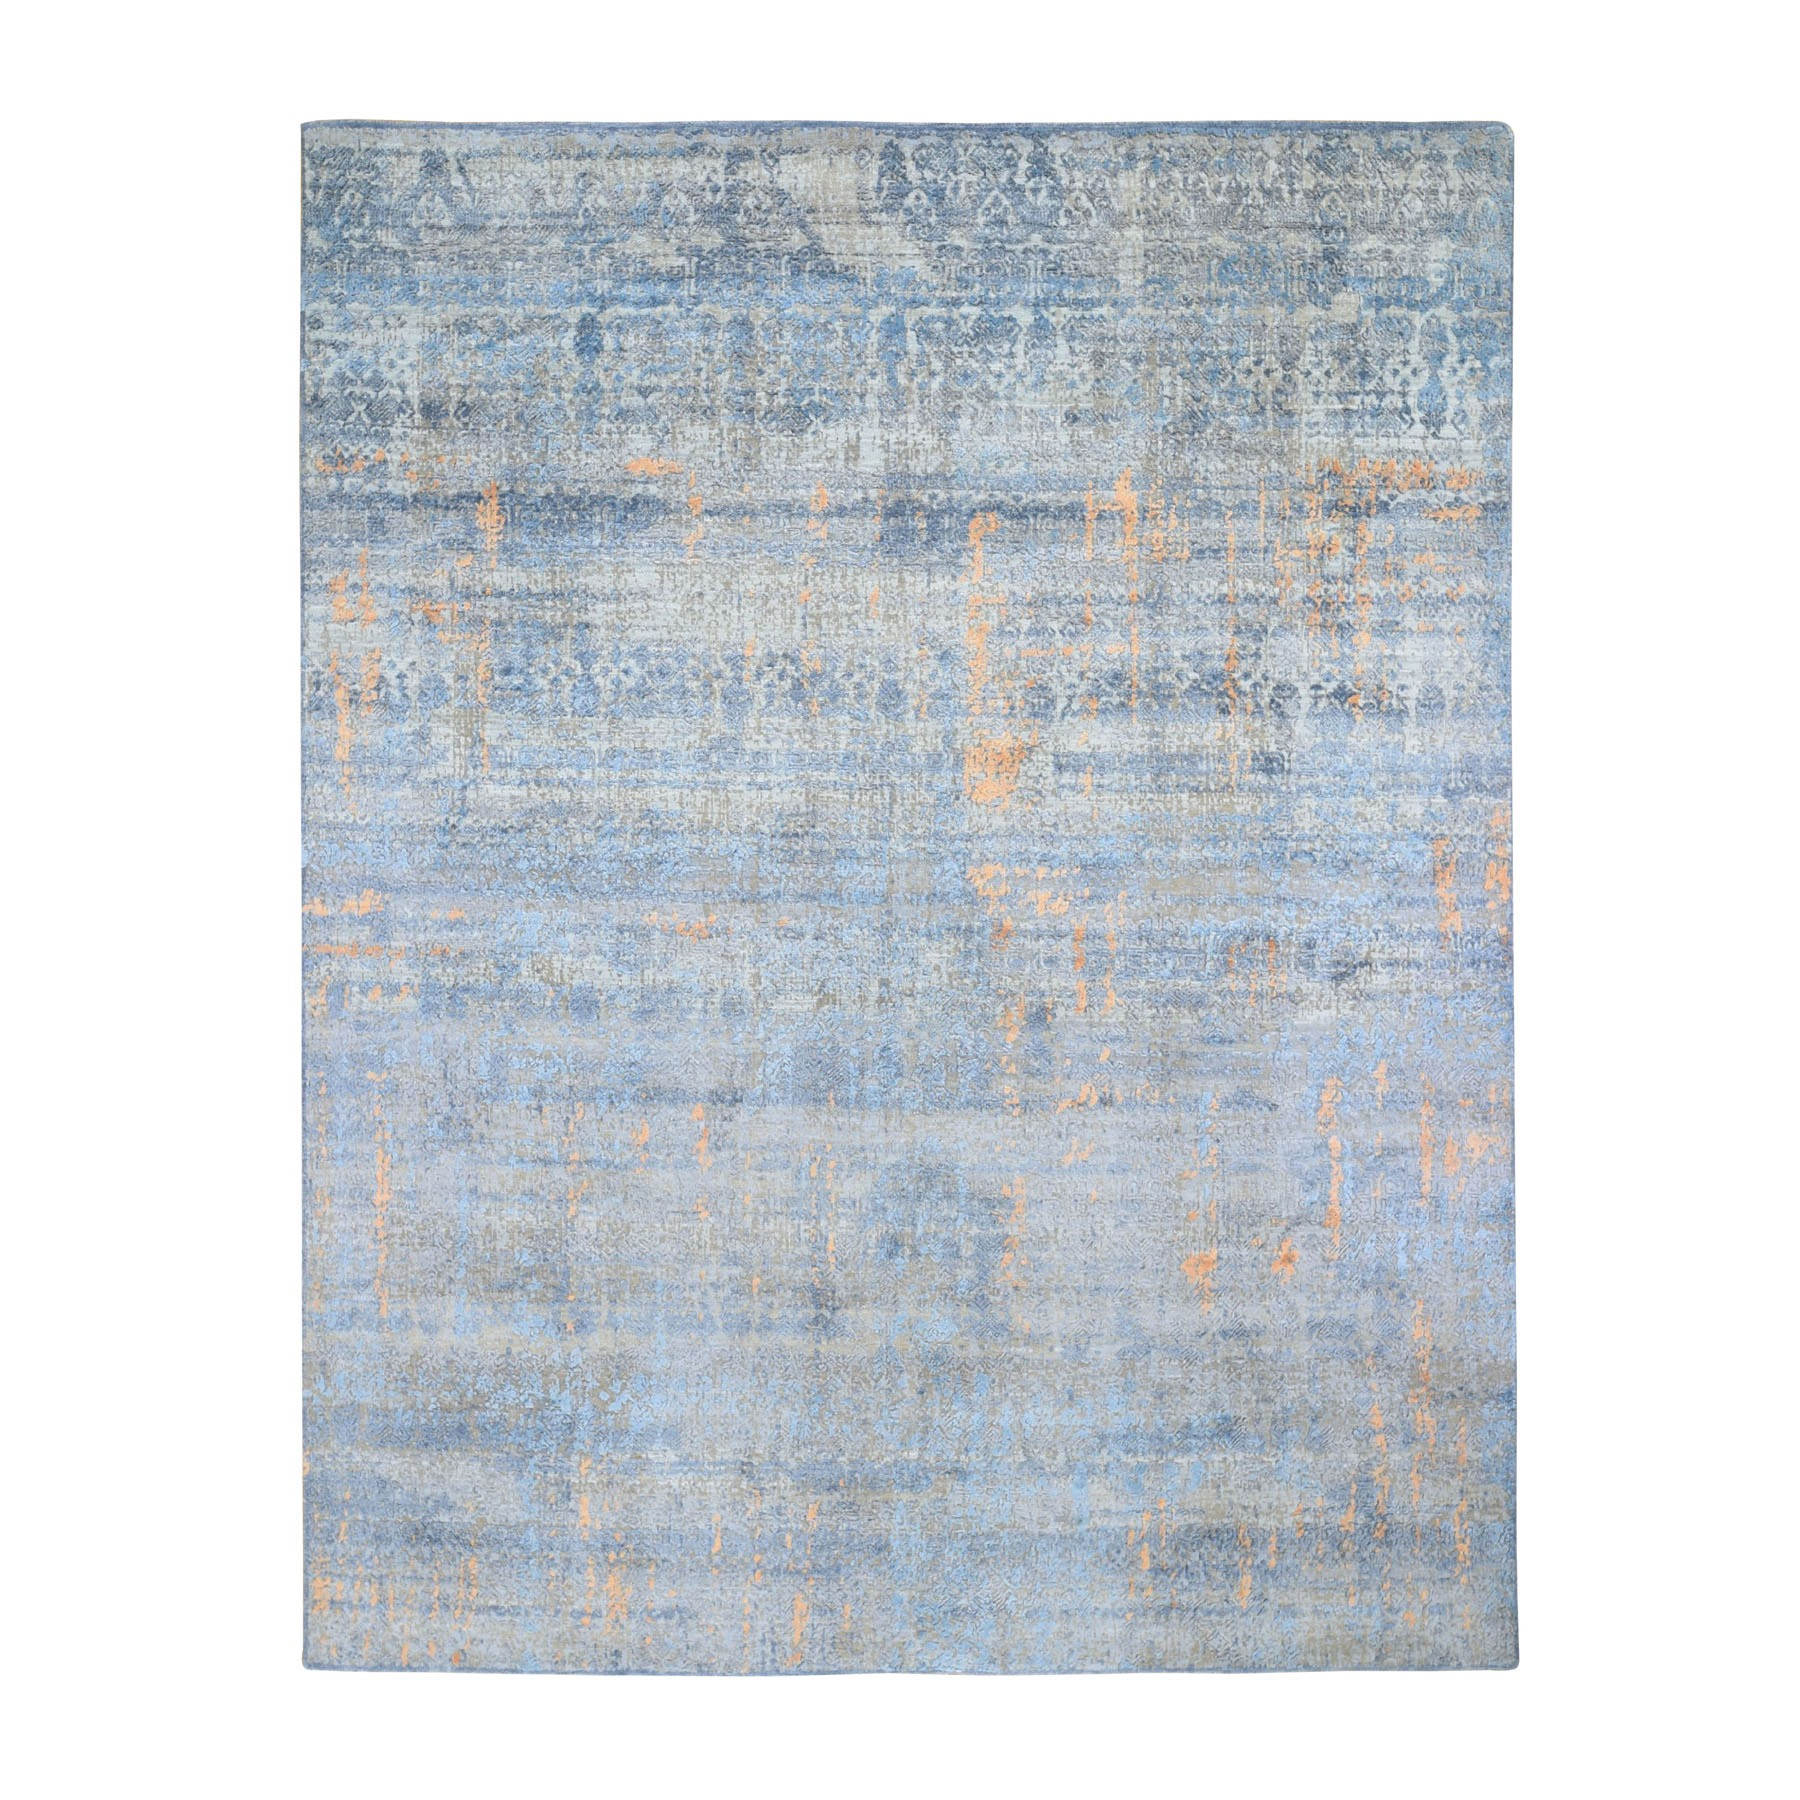 8'x10'  Light Blue Silk With Textured Wool Abstract Dripping Design Hand Woven Oriental Rug